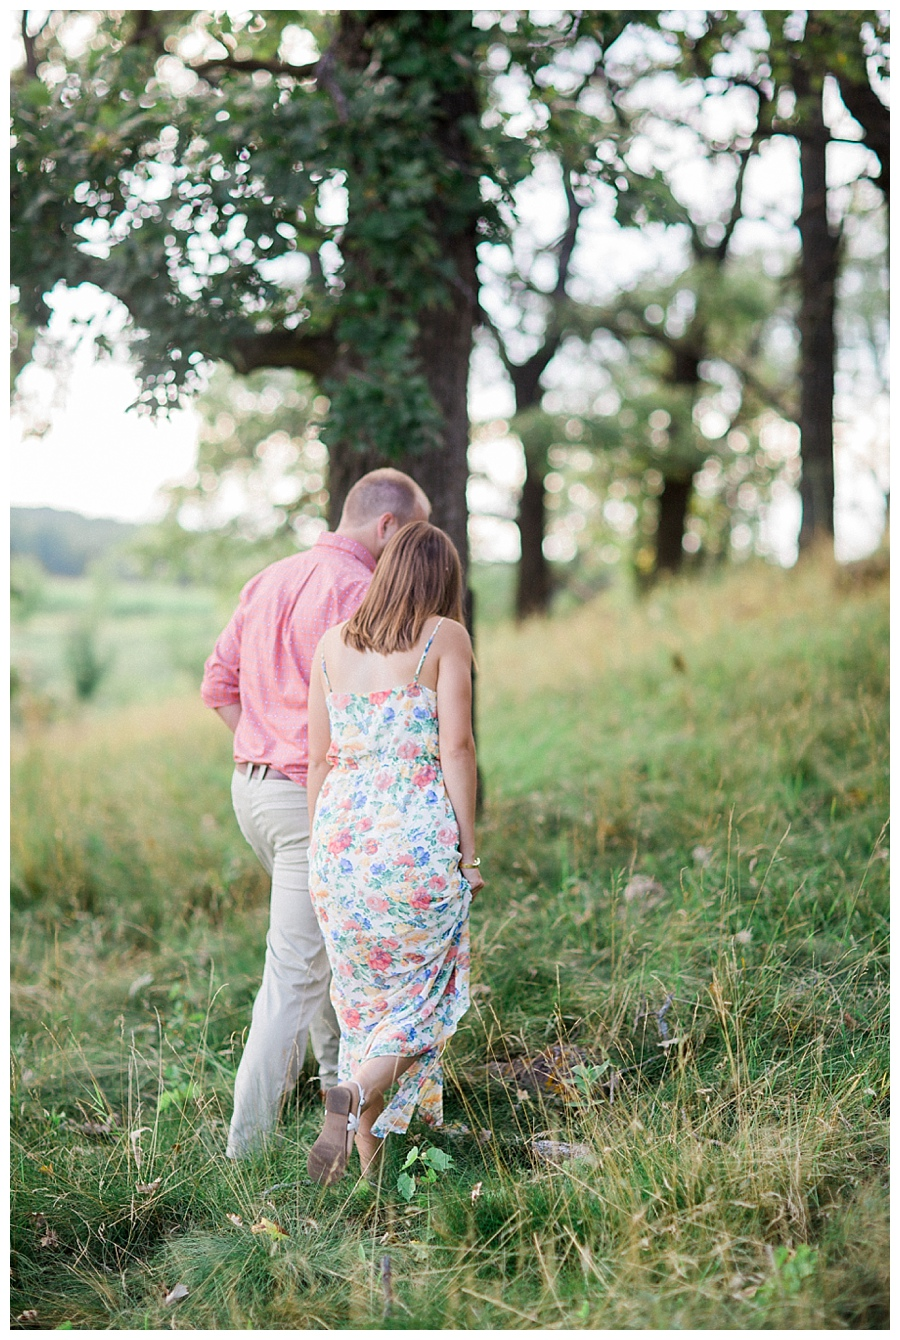 Couple walking together for their engagement session at Pope Farms Conservancy